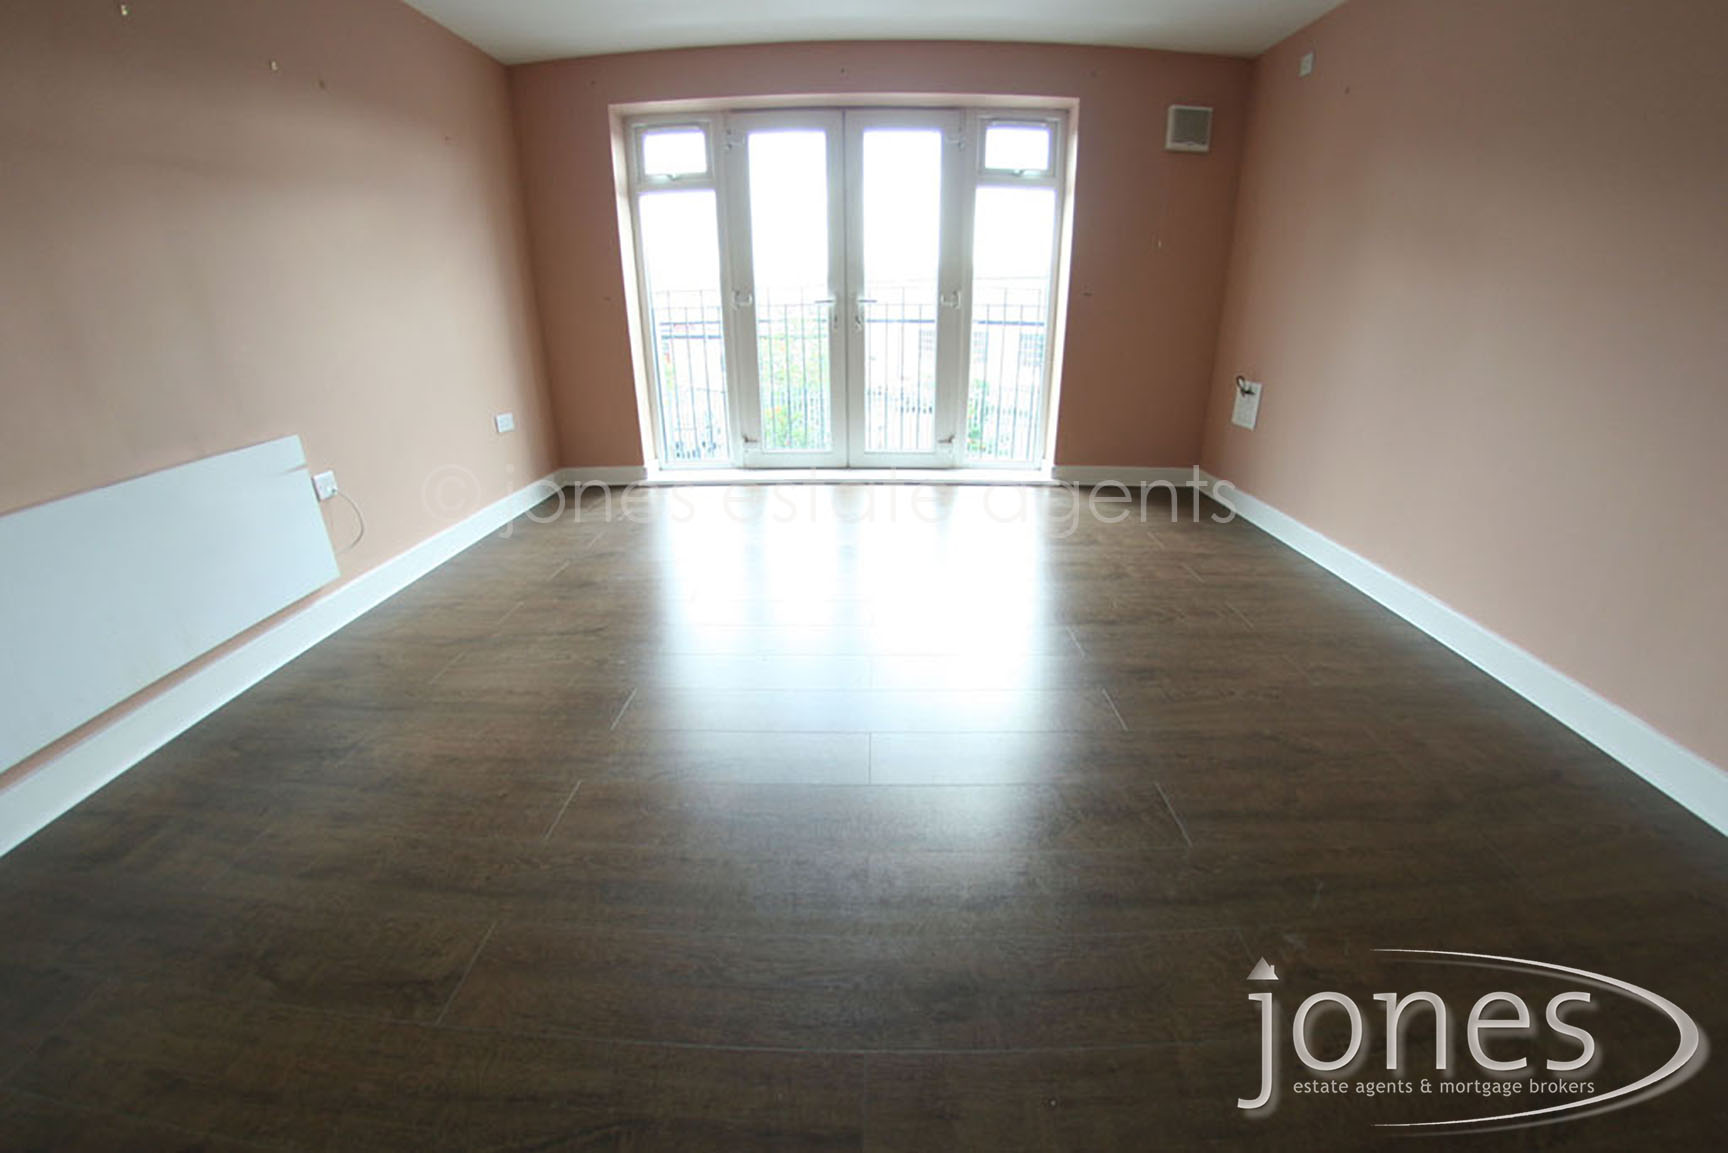 Home for Sale Let - Photo 02 York Apartments, Thornaby, Stockton on Tees,TS17 0AS